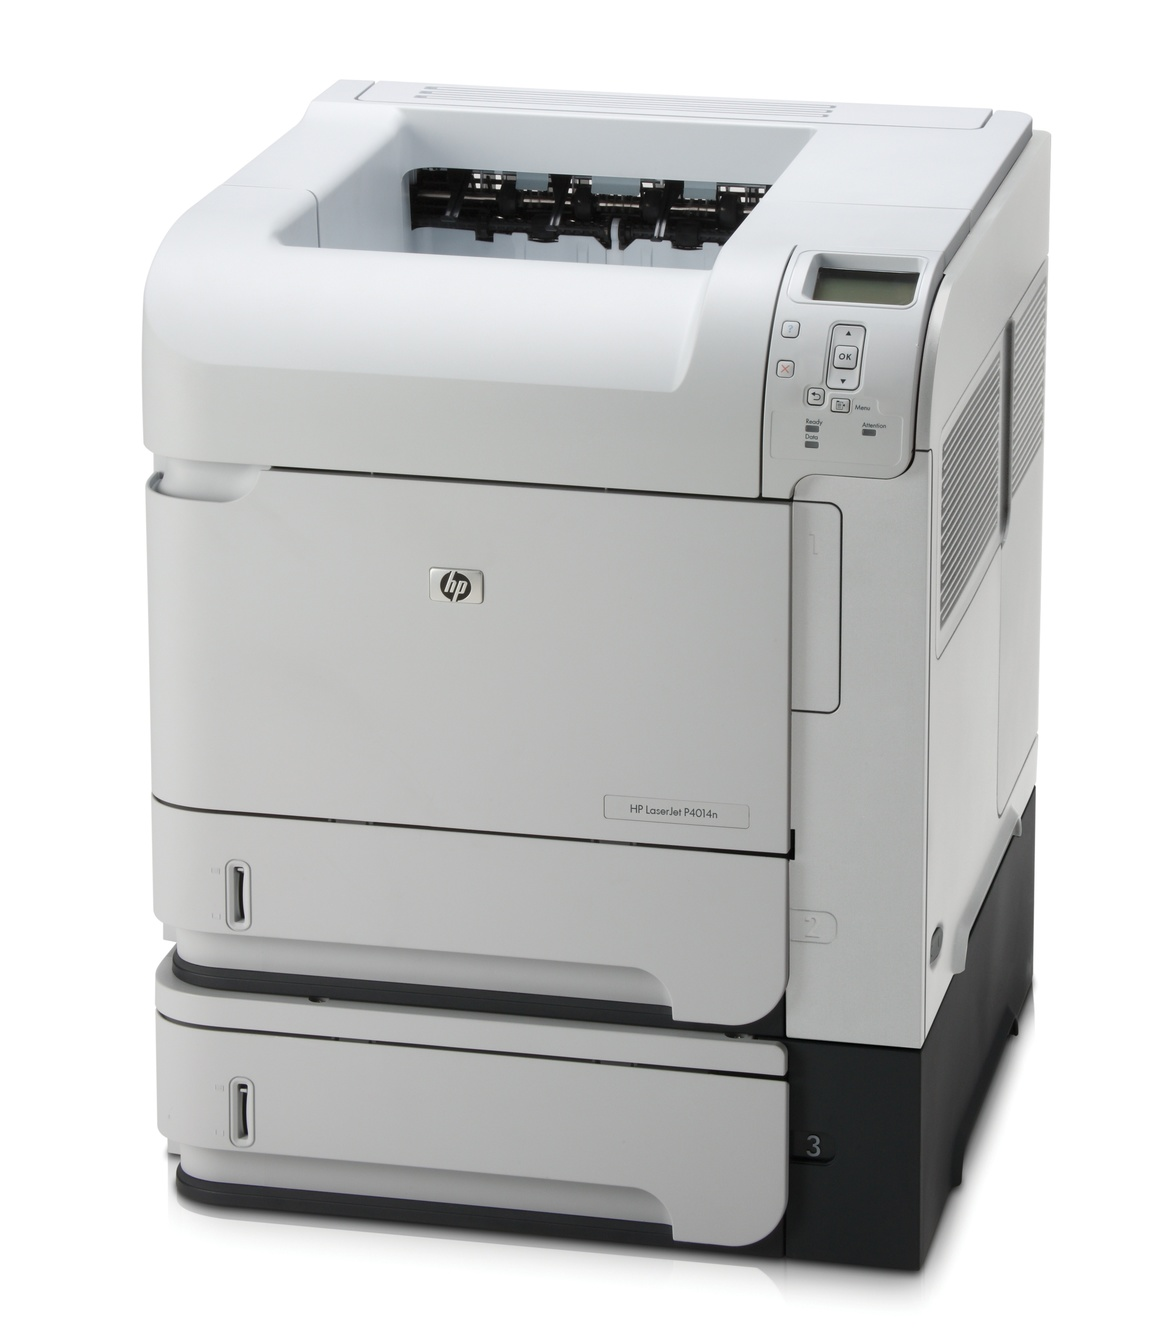 About the HP LaserJet P4014dn